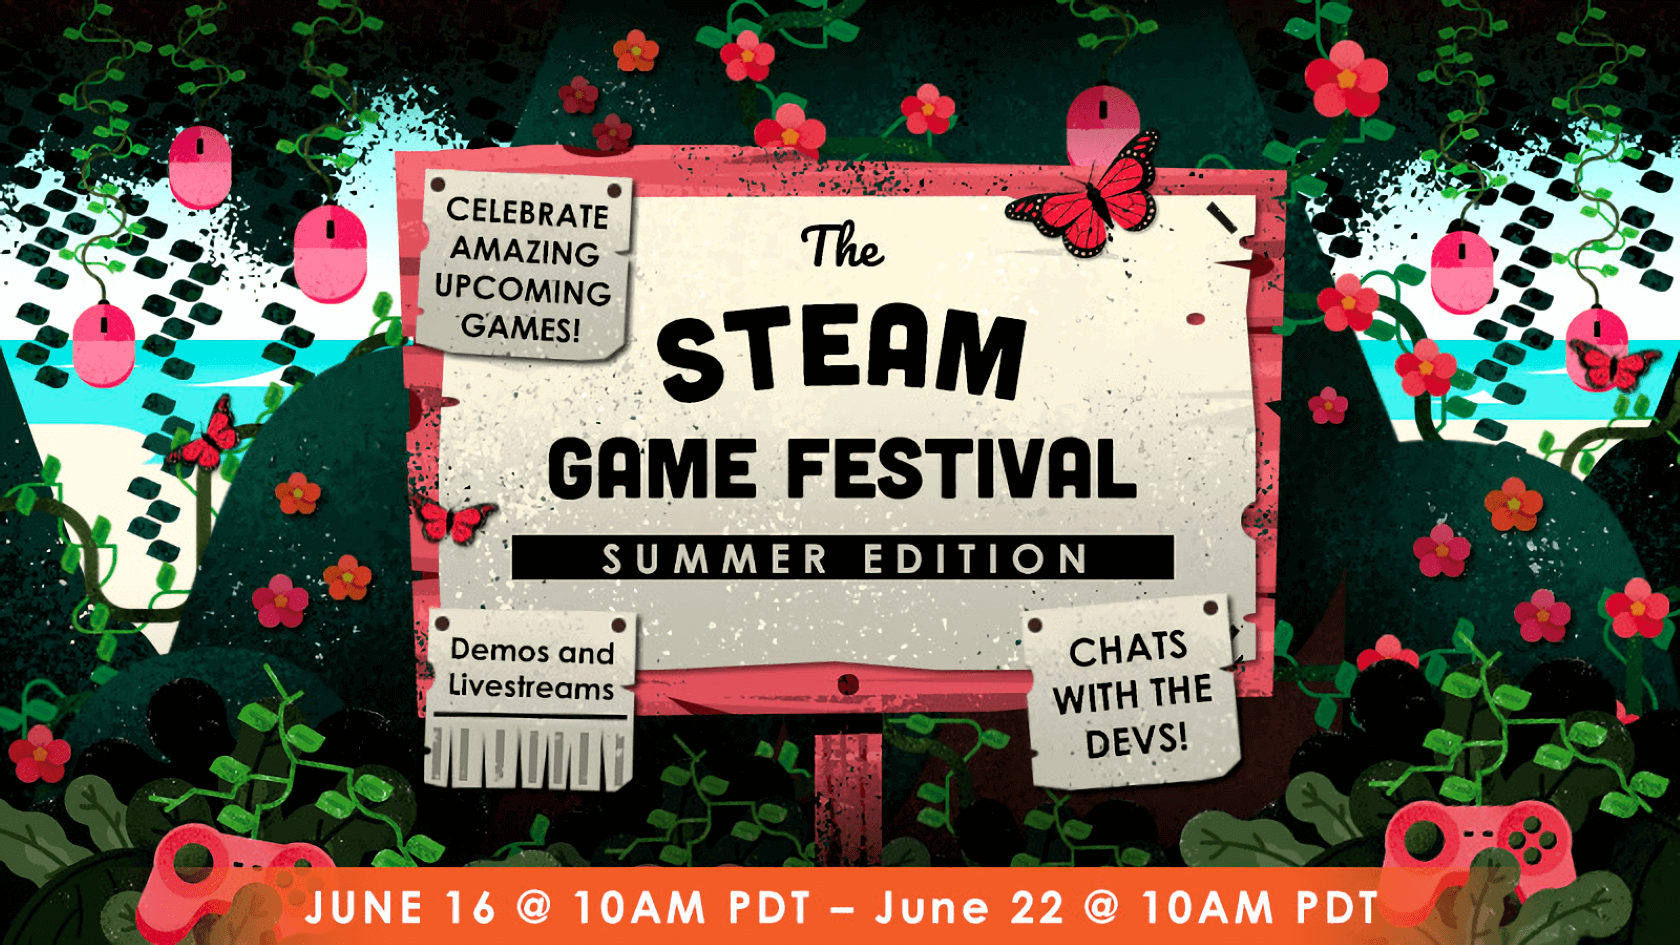 Steam's Game Festival returns with hundreds of playable demos for upcoming titles